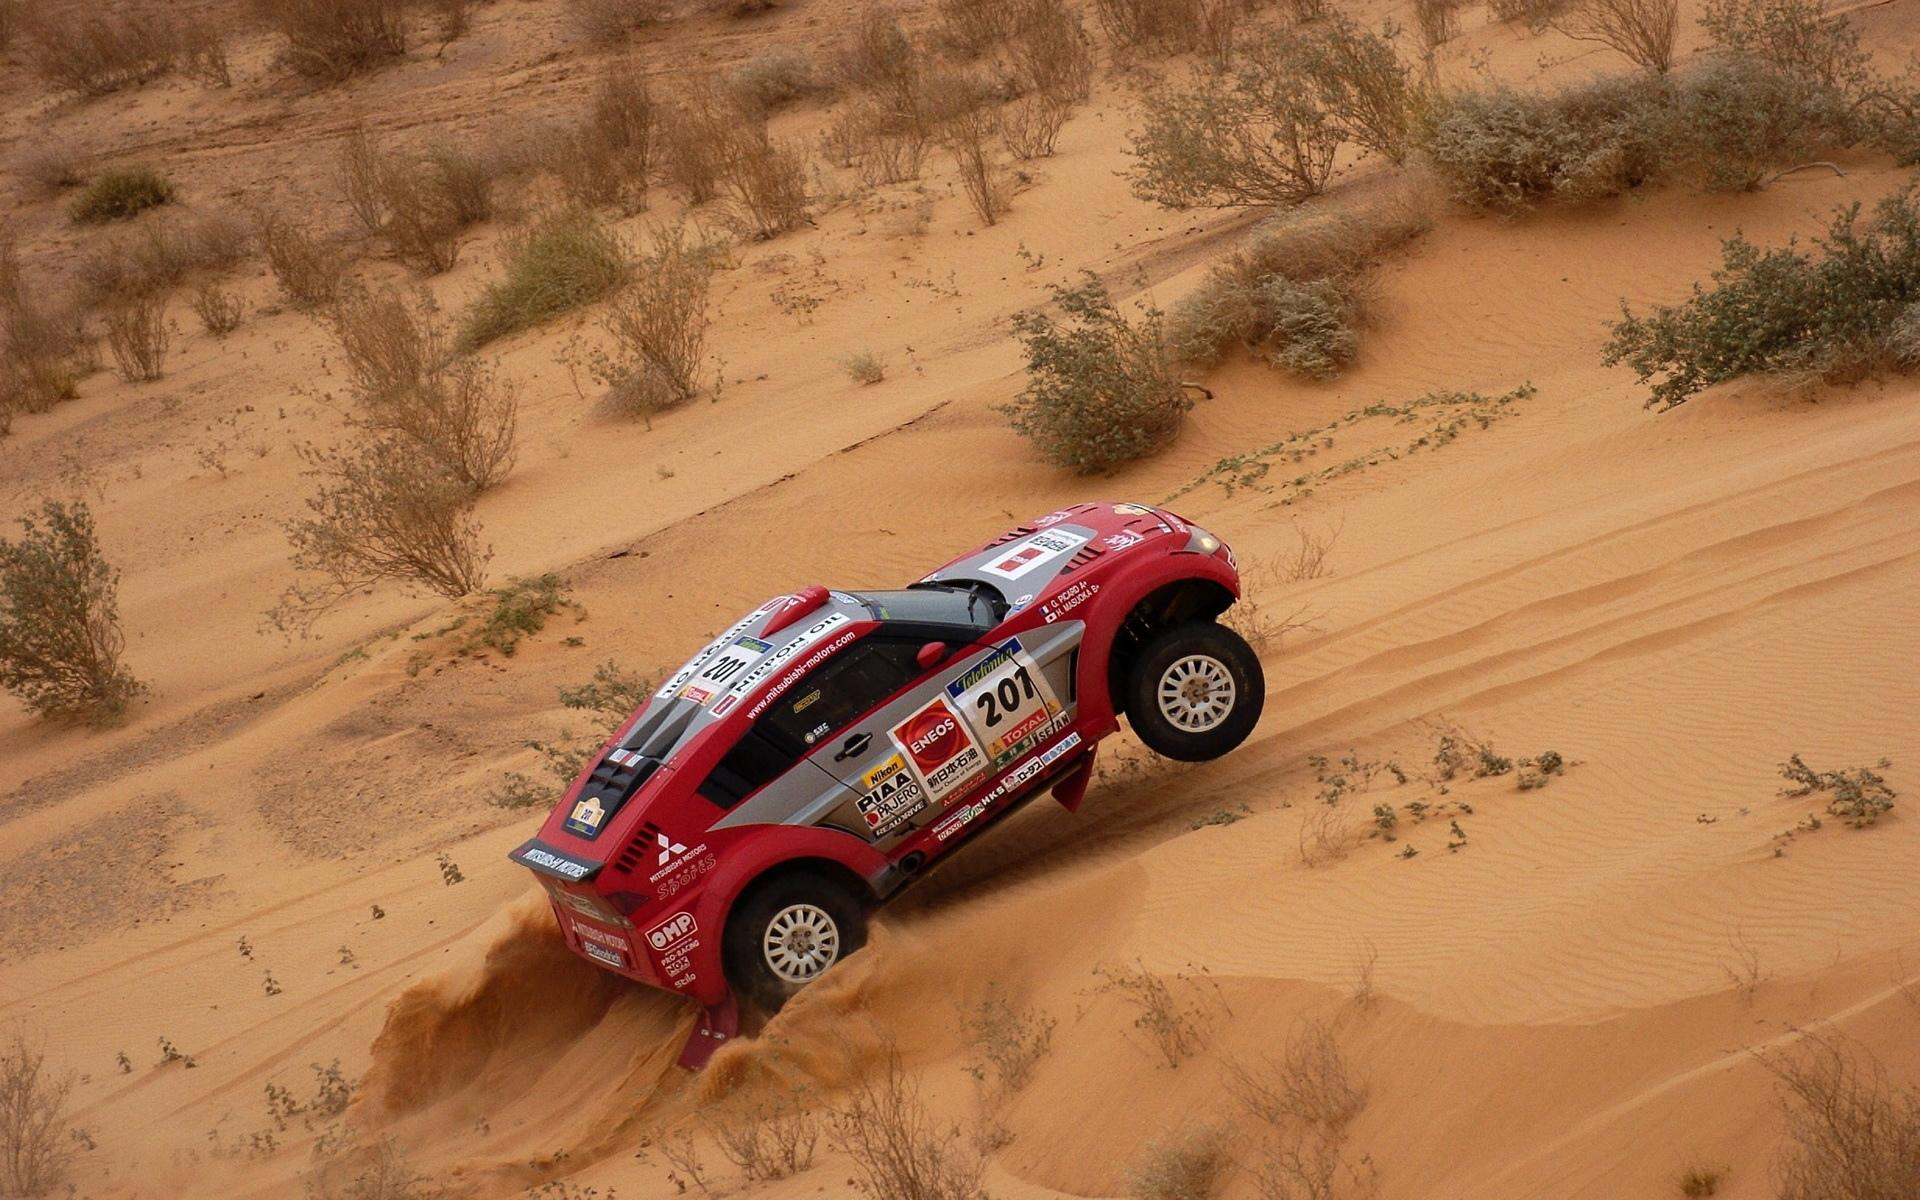 dakar rally wallpaper hd download. Black Bedroom Furniture Sets. Home Design Ideas